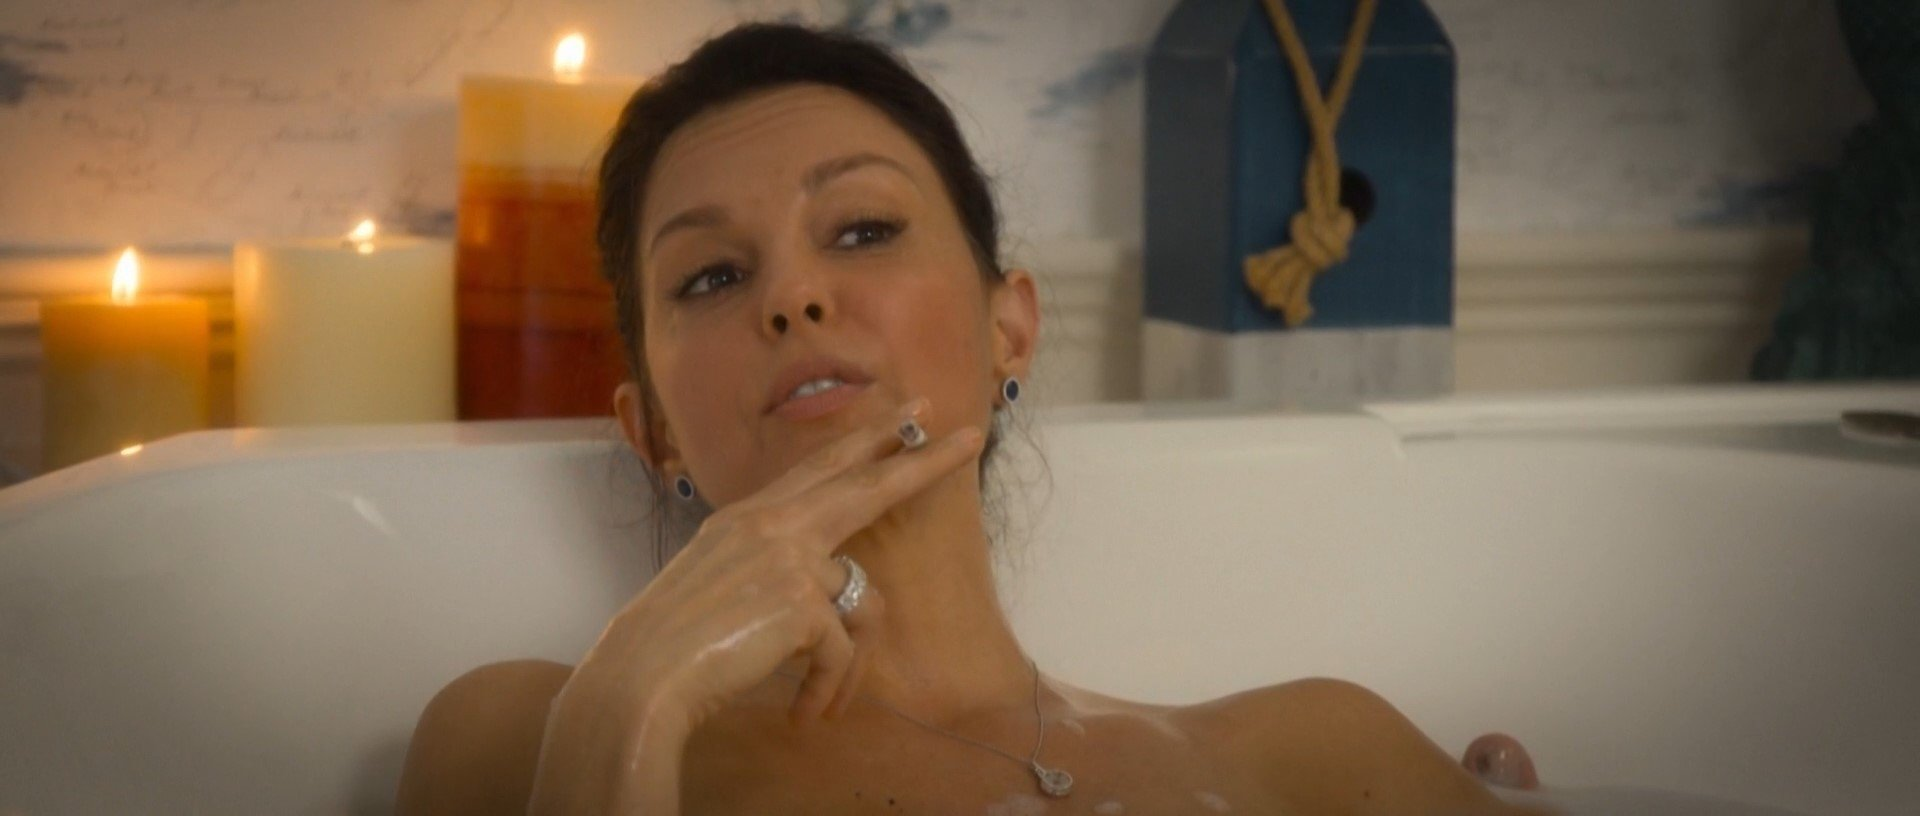 Nude photos of ashley judd